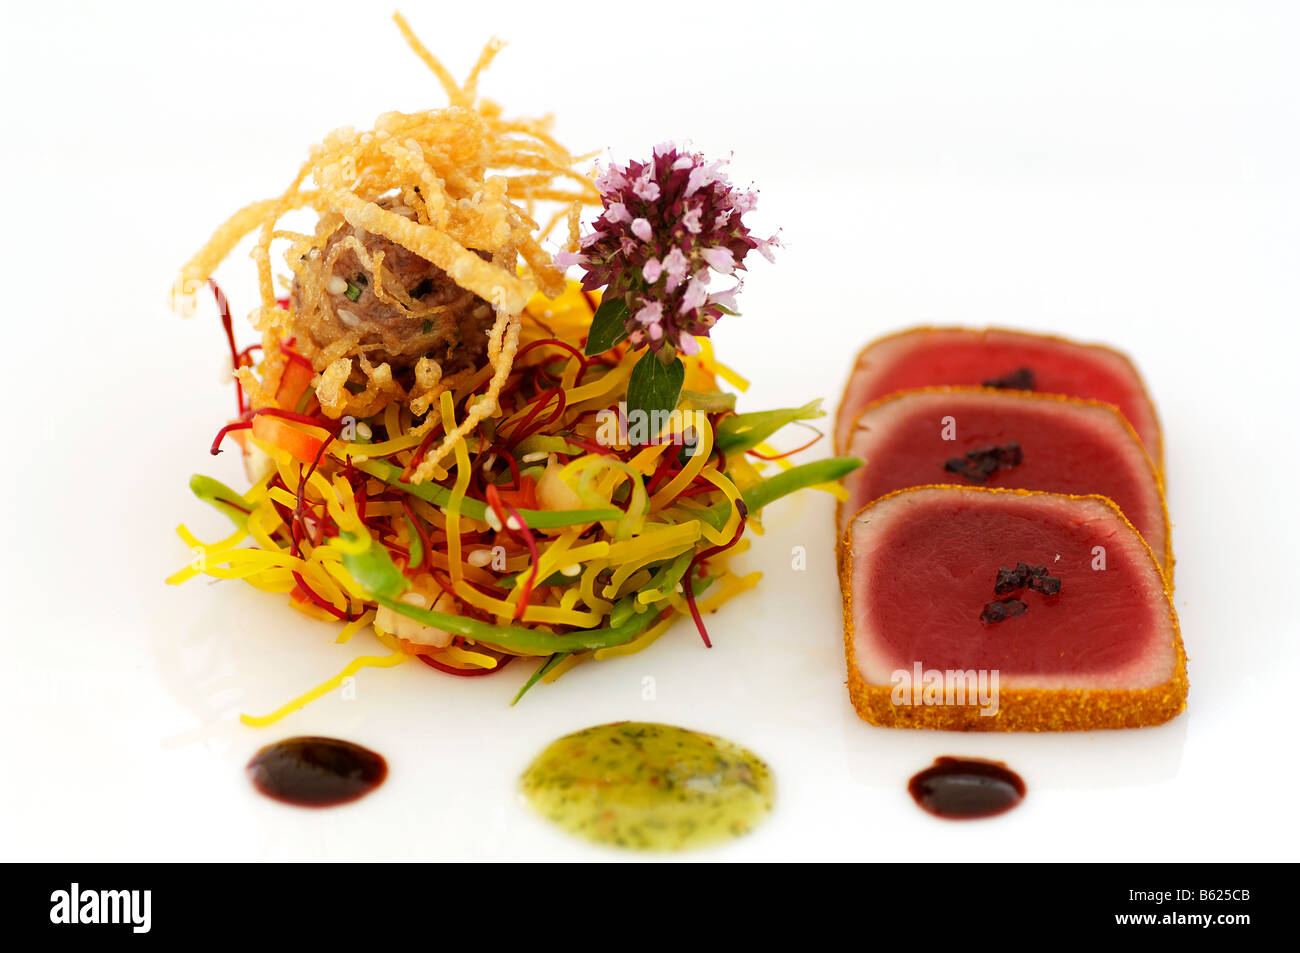 Tuna with curry china salad food haute cuisine stock for Haute cuisine